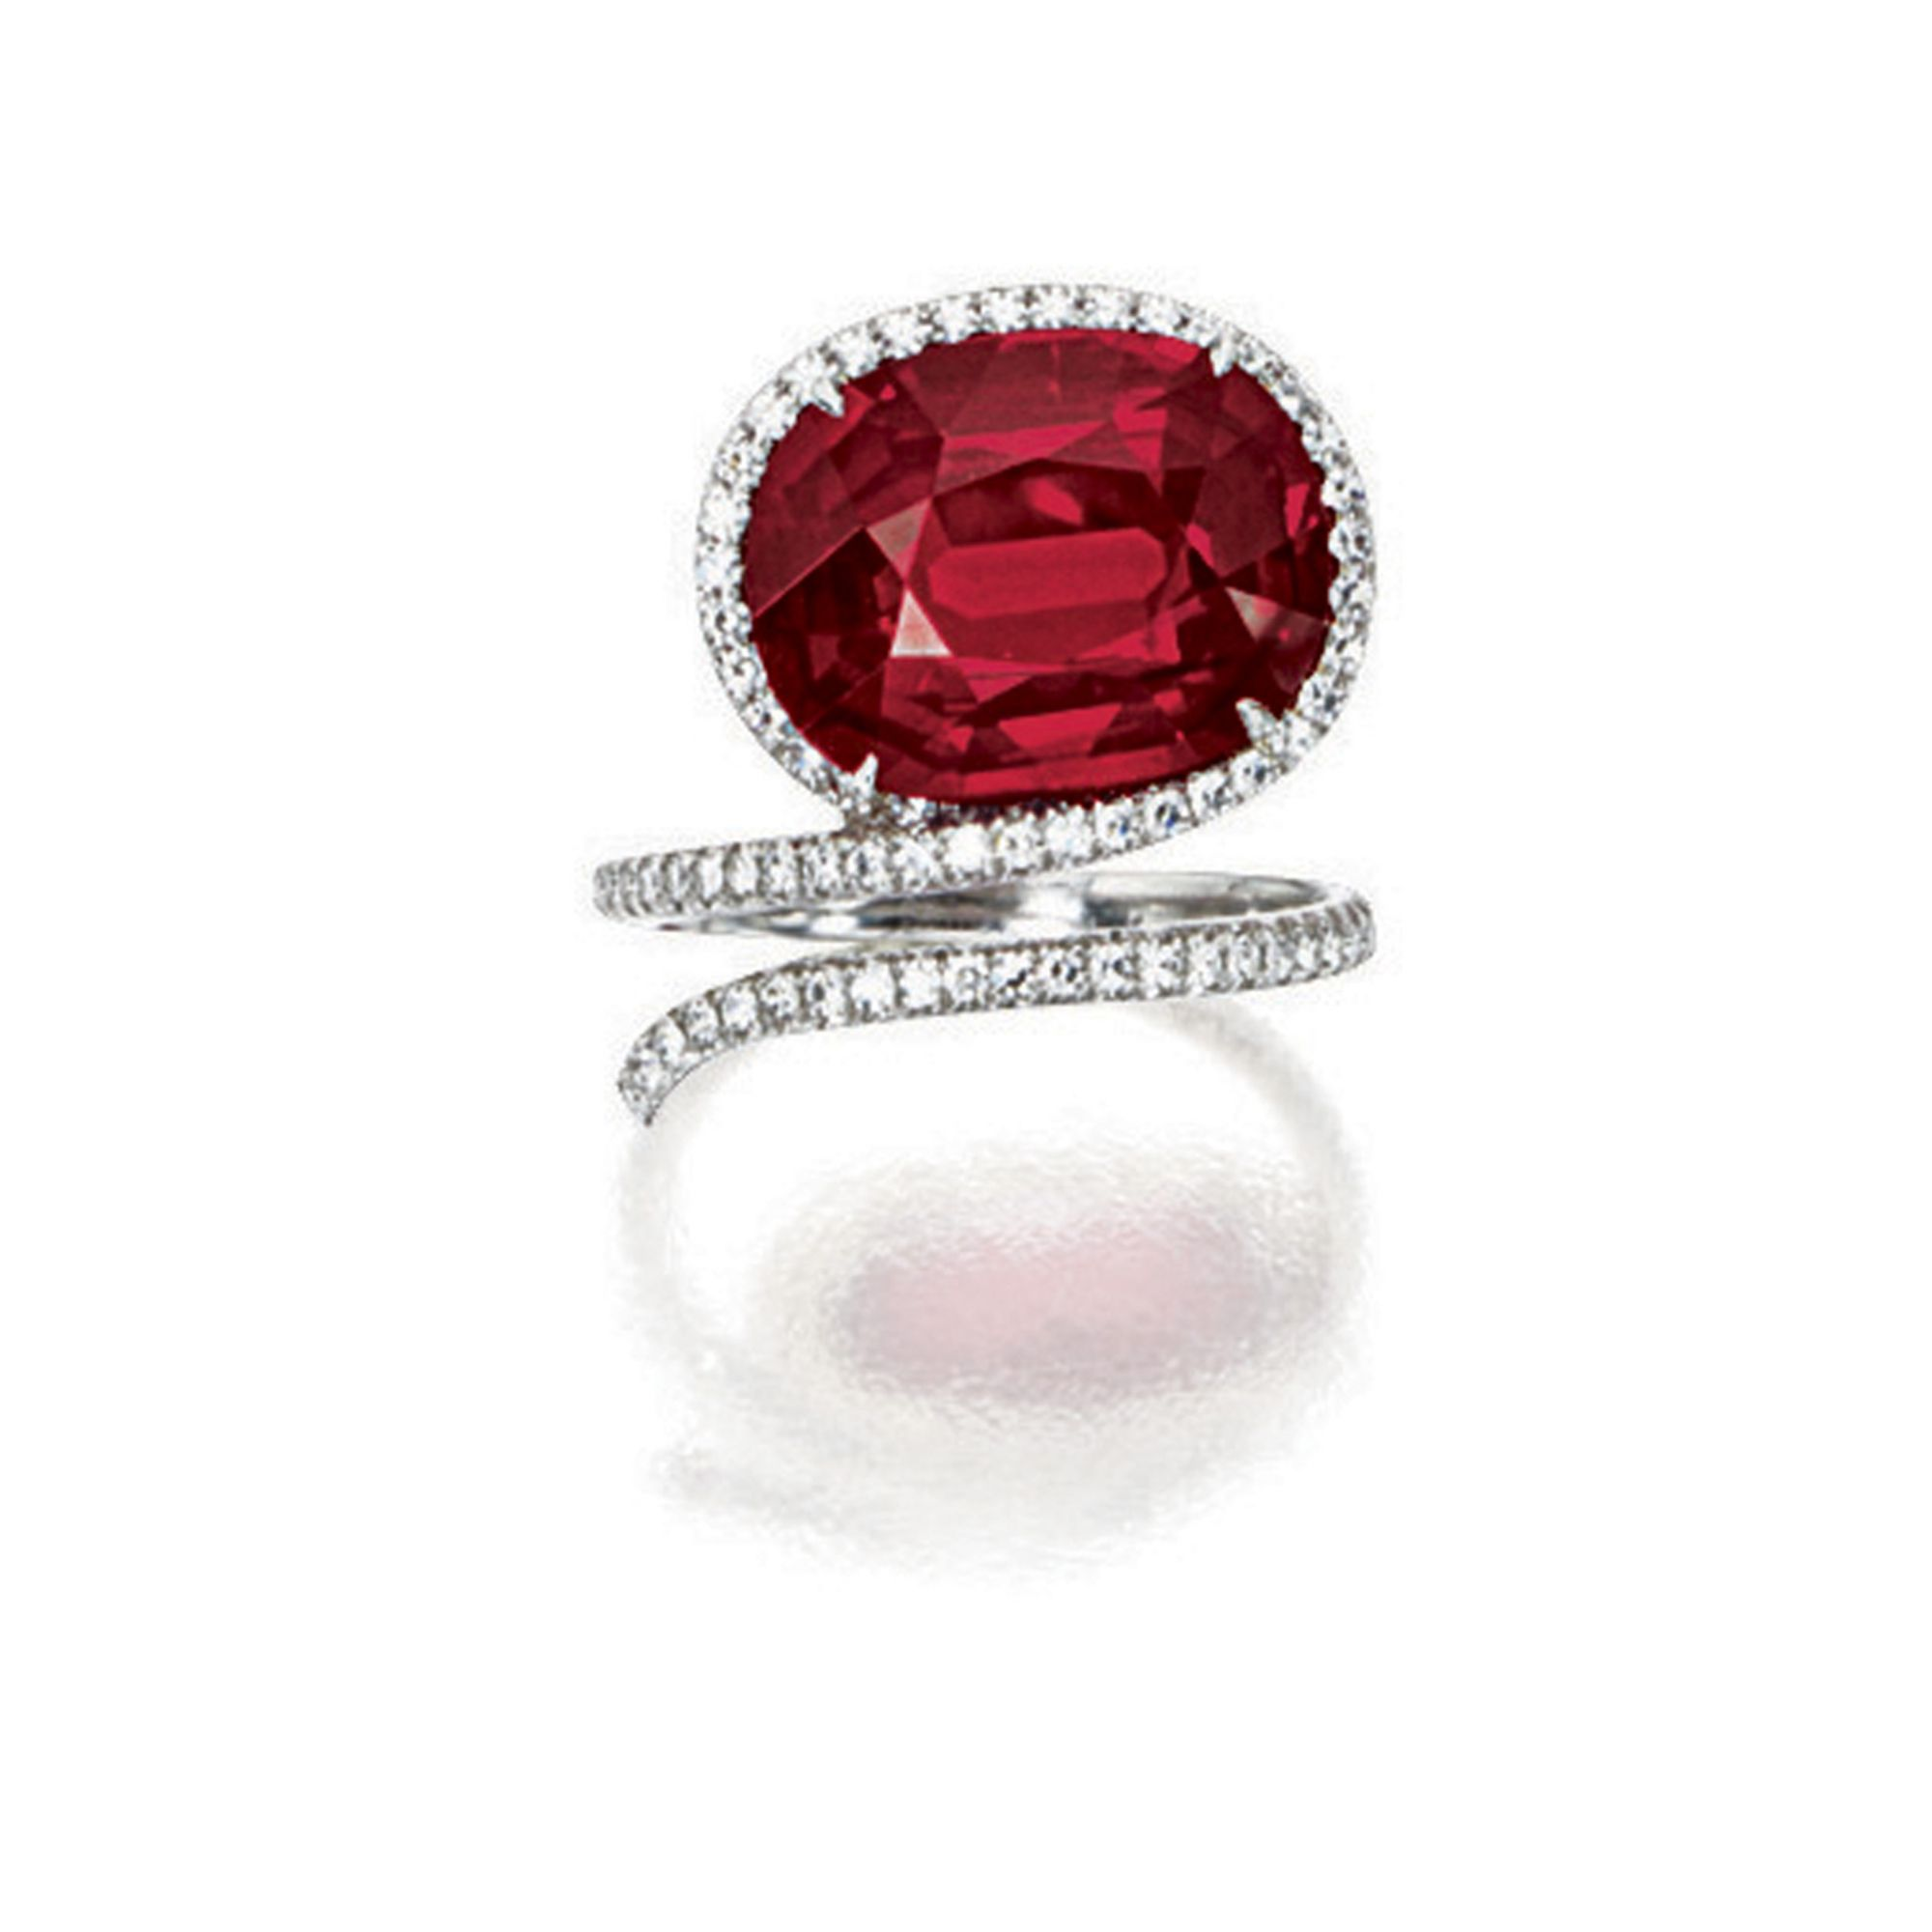 Superb ruby and diamond ring james de givenchy for taffin set with